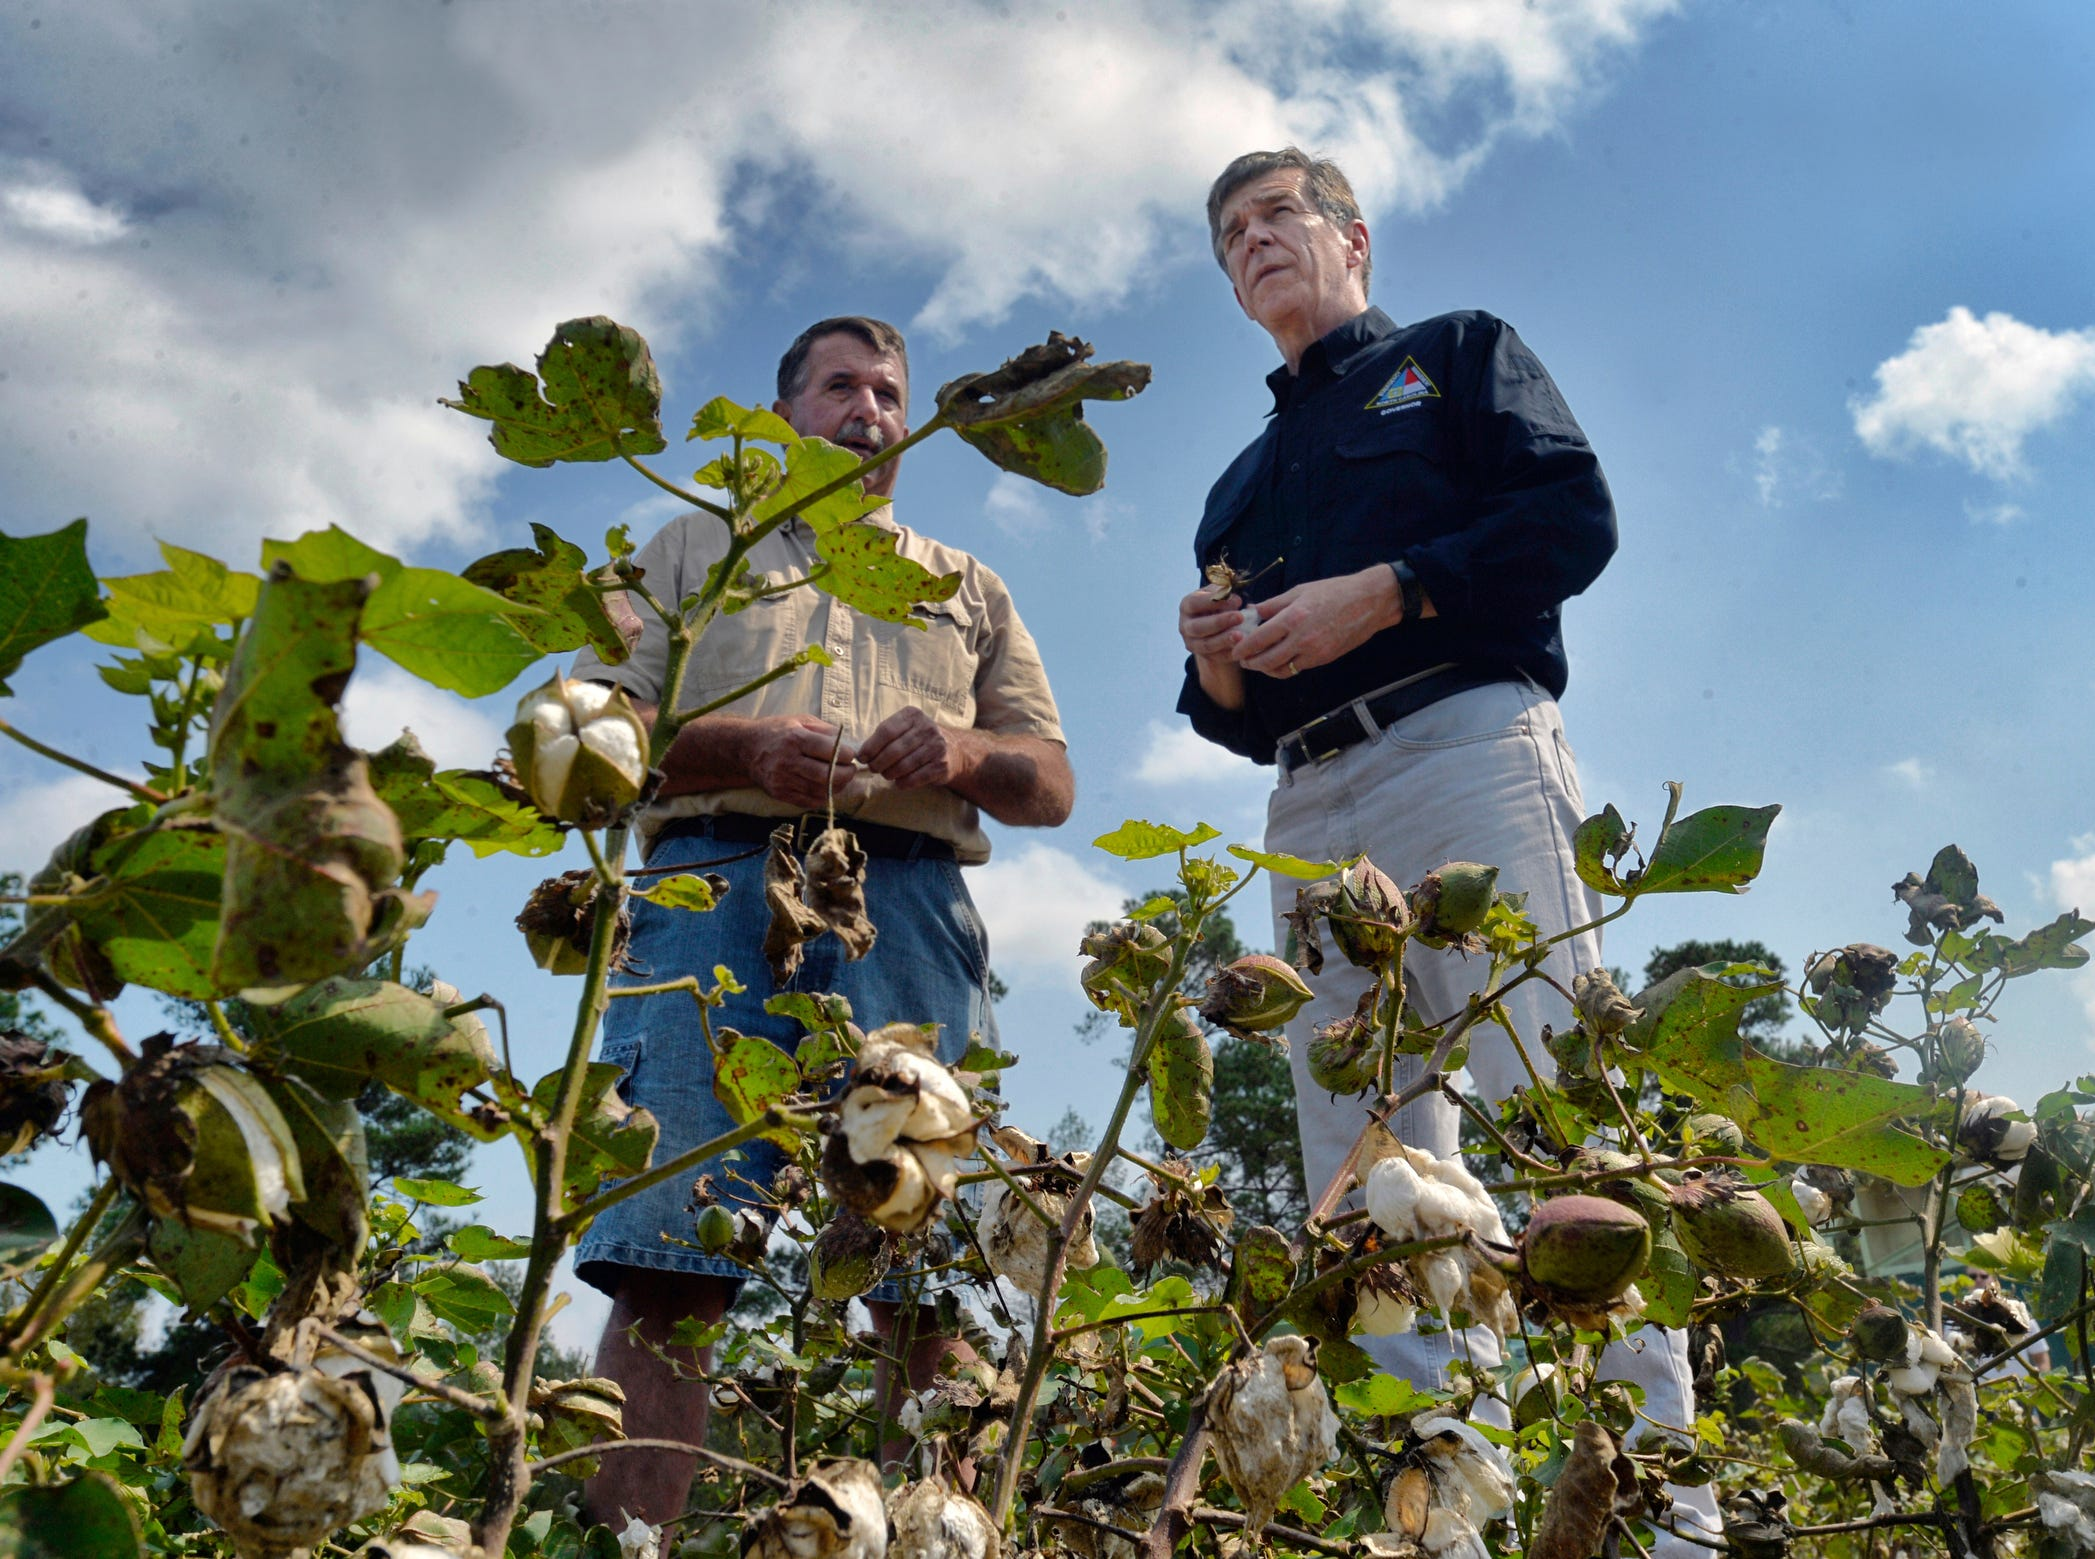 North Carolina Gov. Roy Cooper,  right, surveys the heavily damaged cotton field of farmer Bryan Hagler  during a tour of agricultural areas hit hard by Hurricane Florence, Friday, in Laurinburg, N.C.